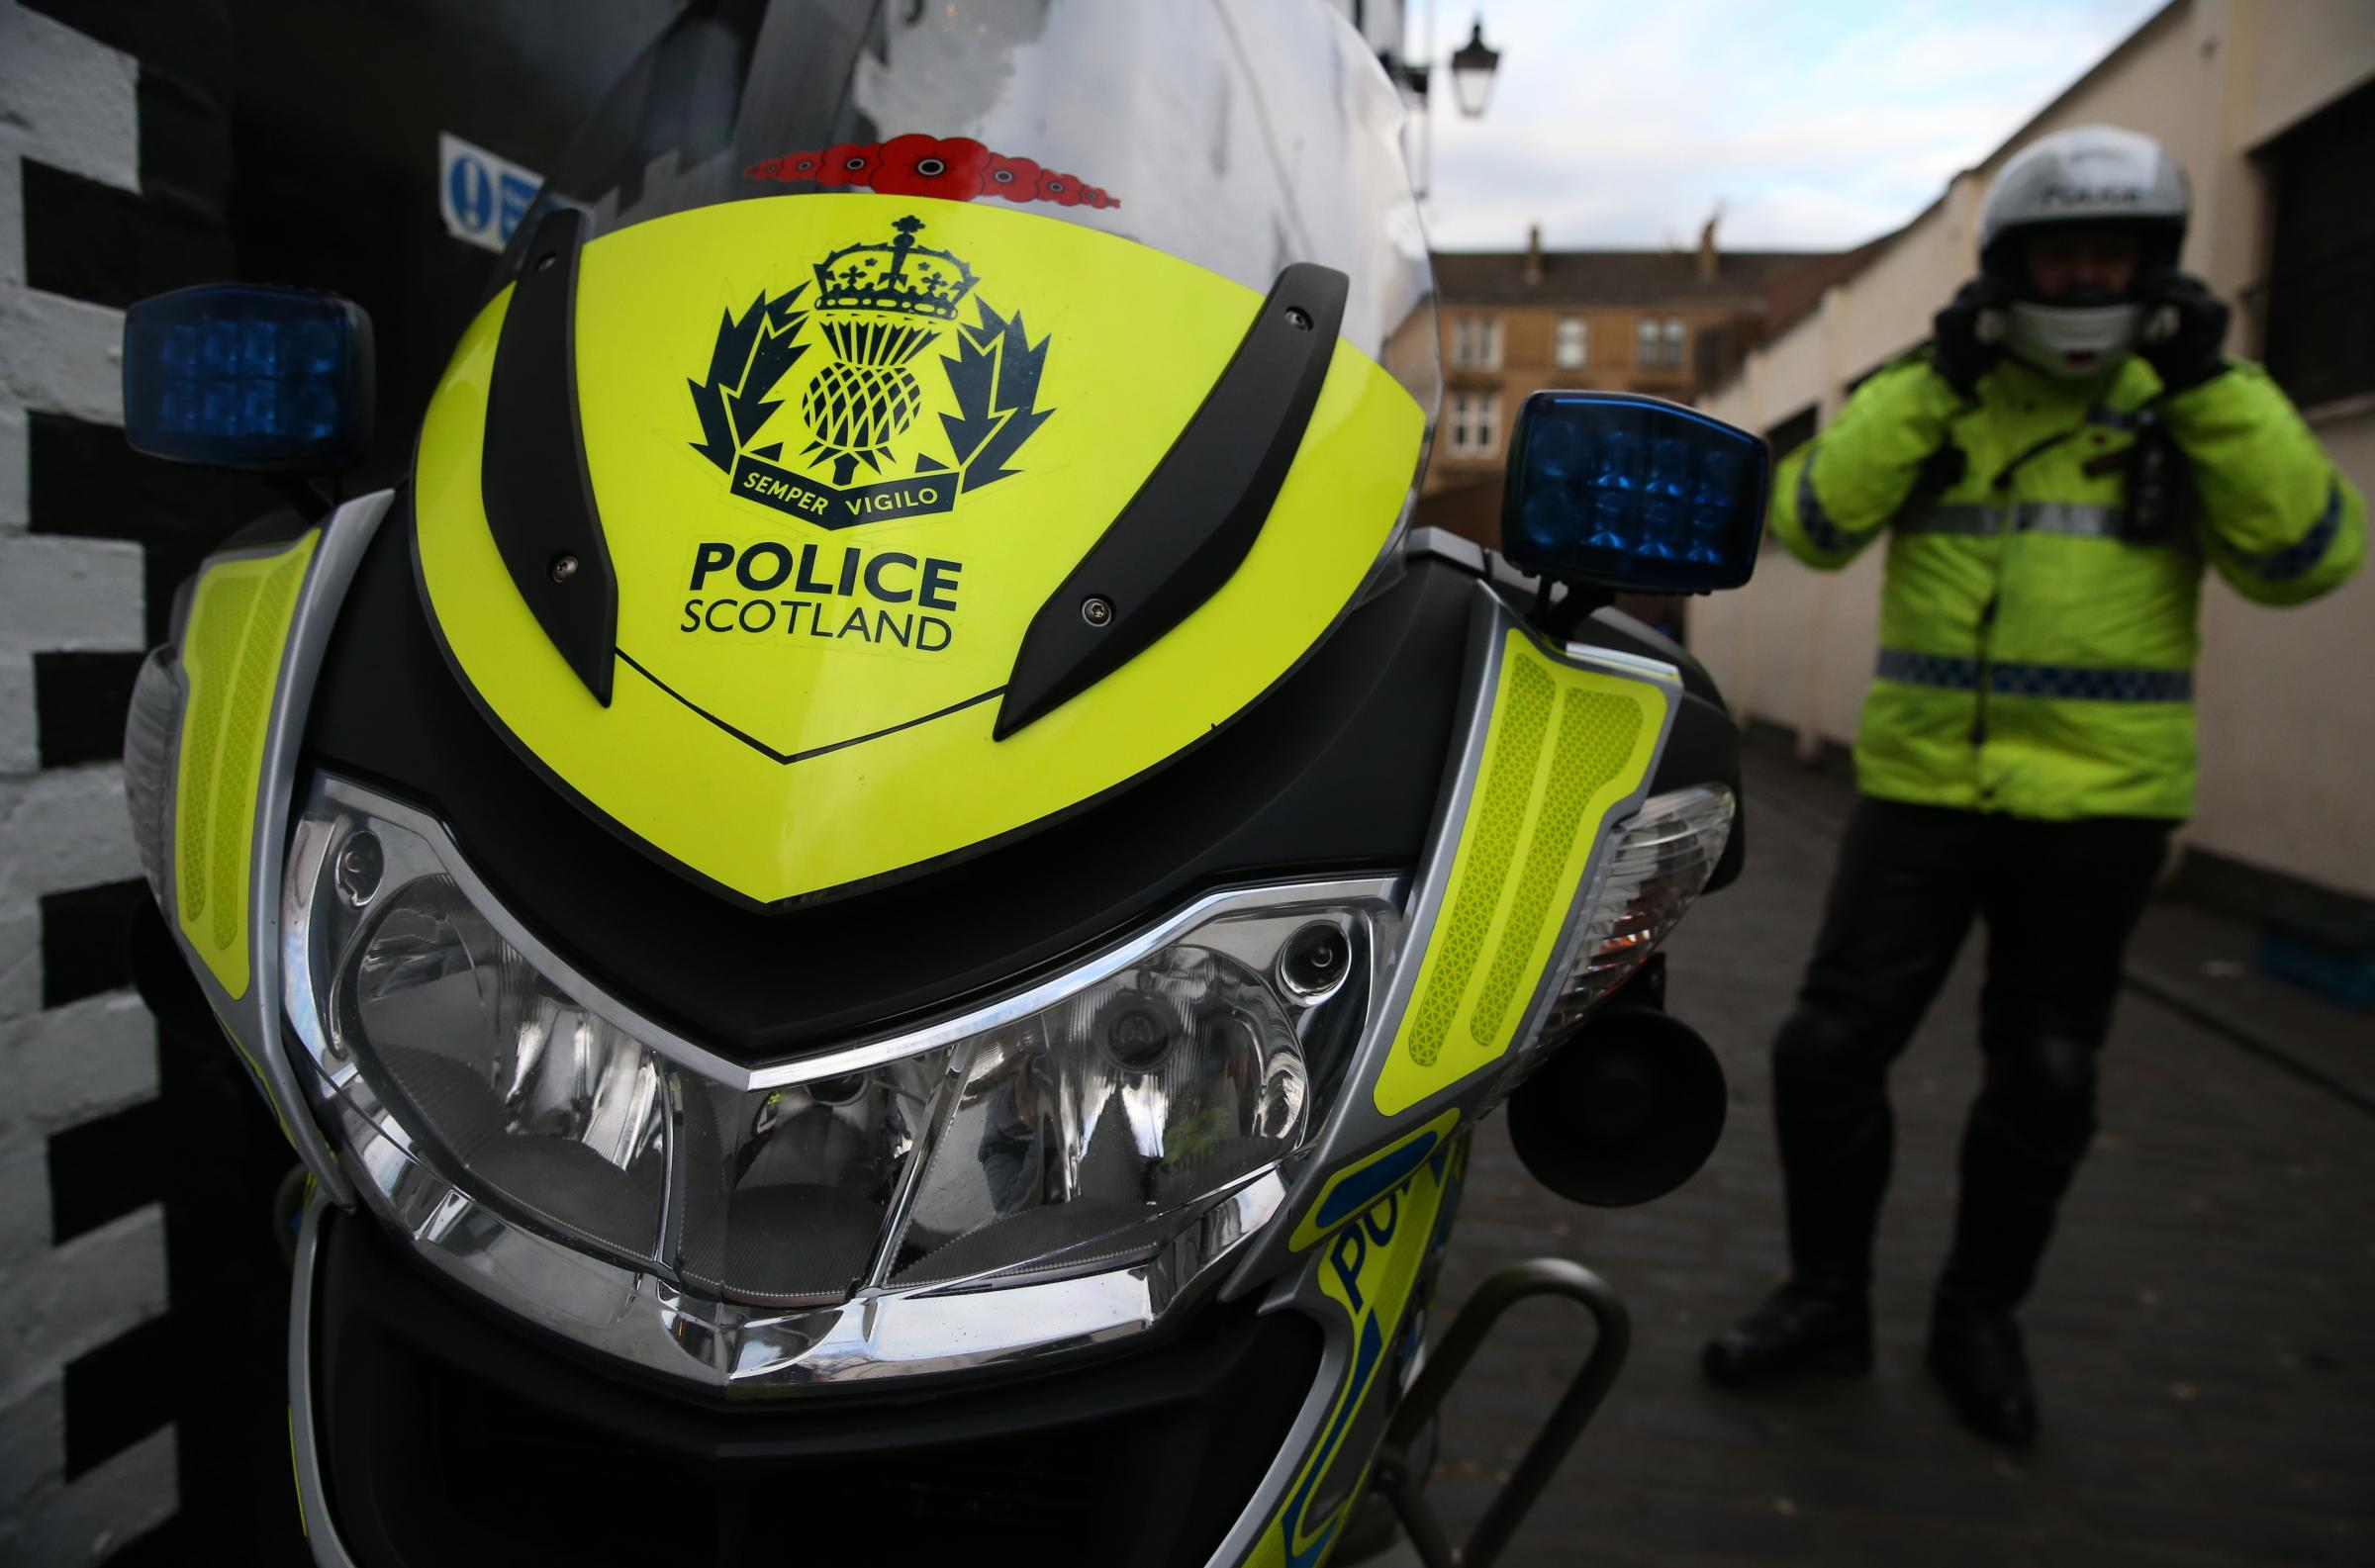 Police Scotland motorcycle